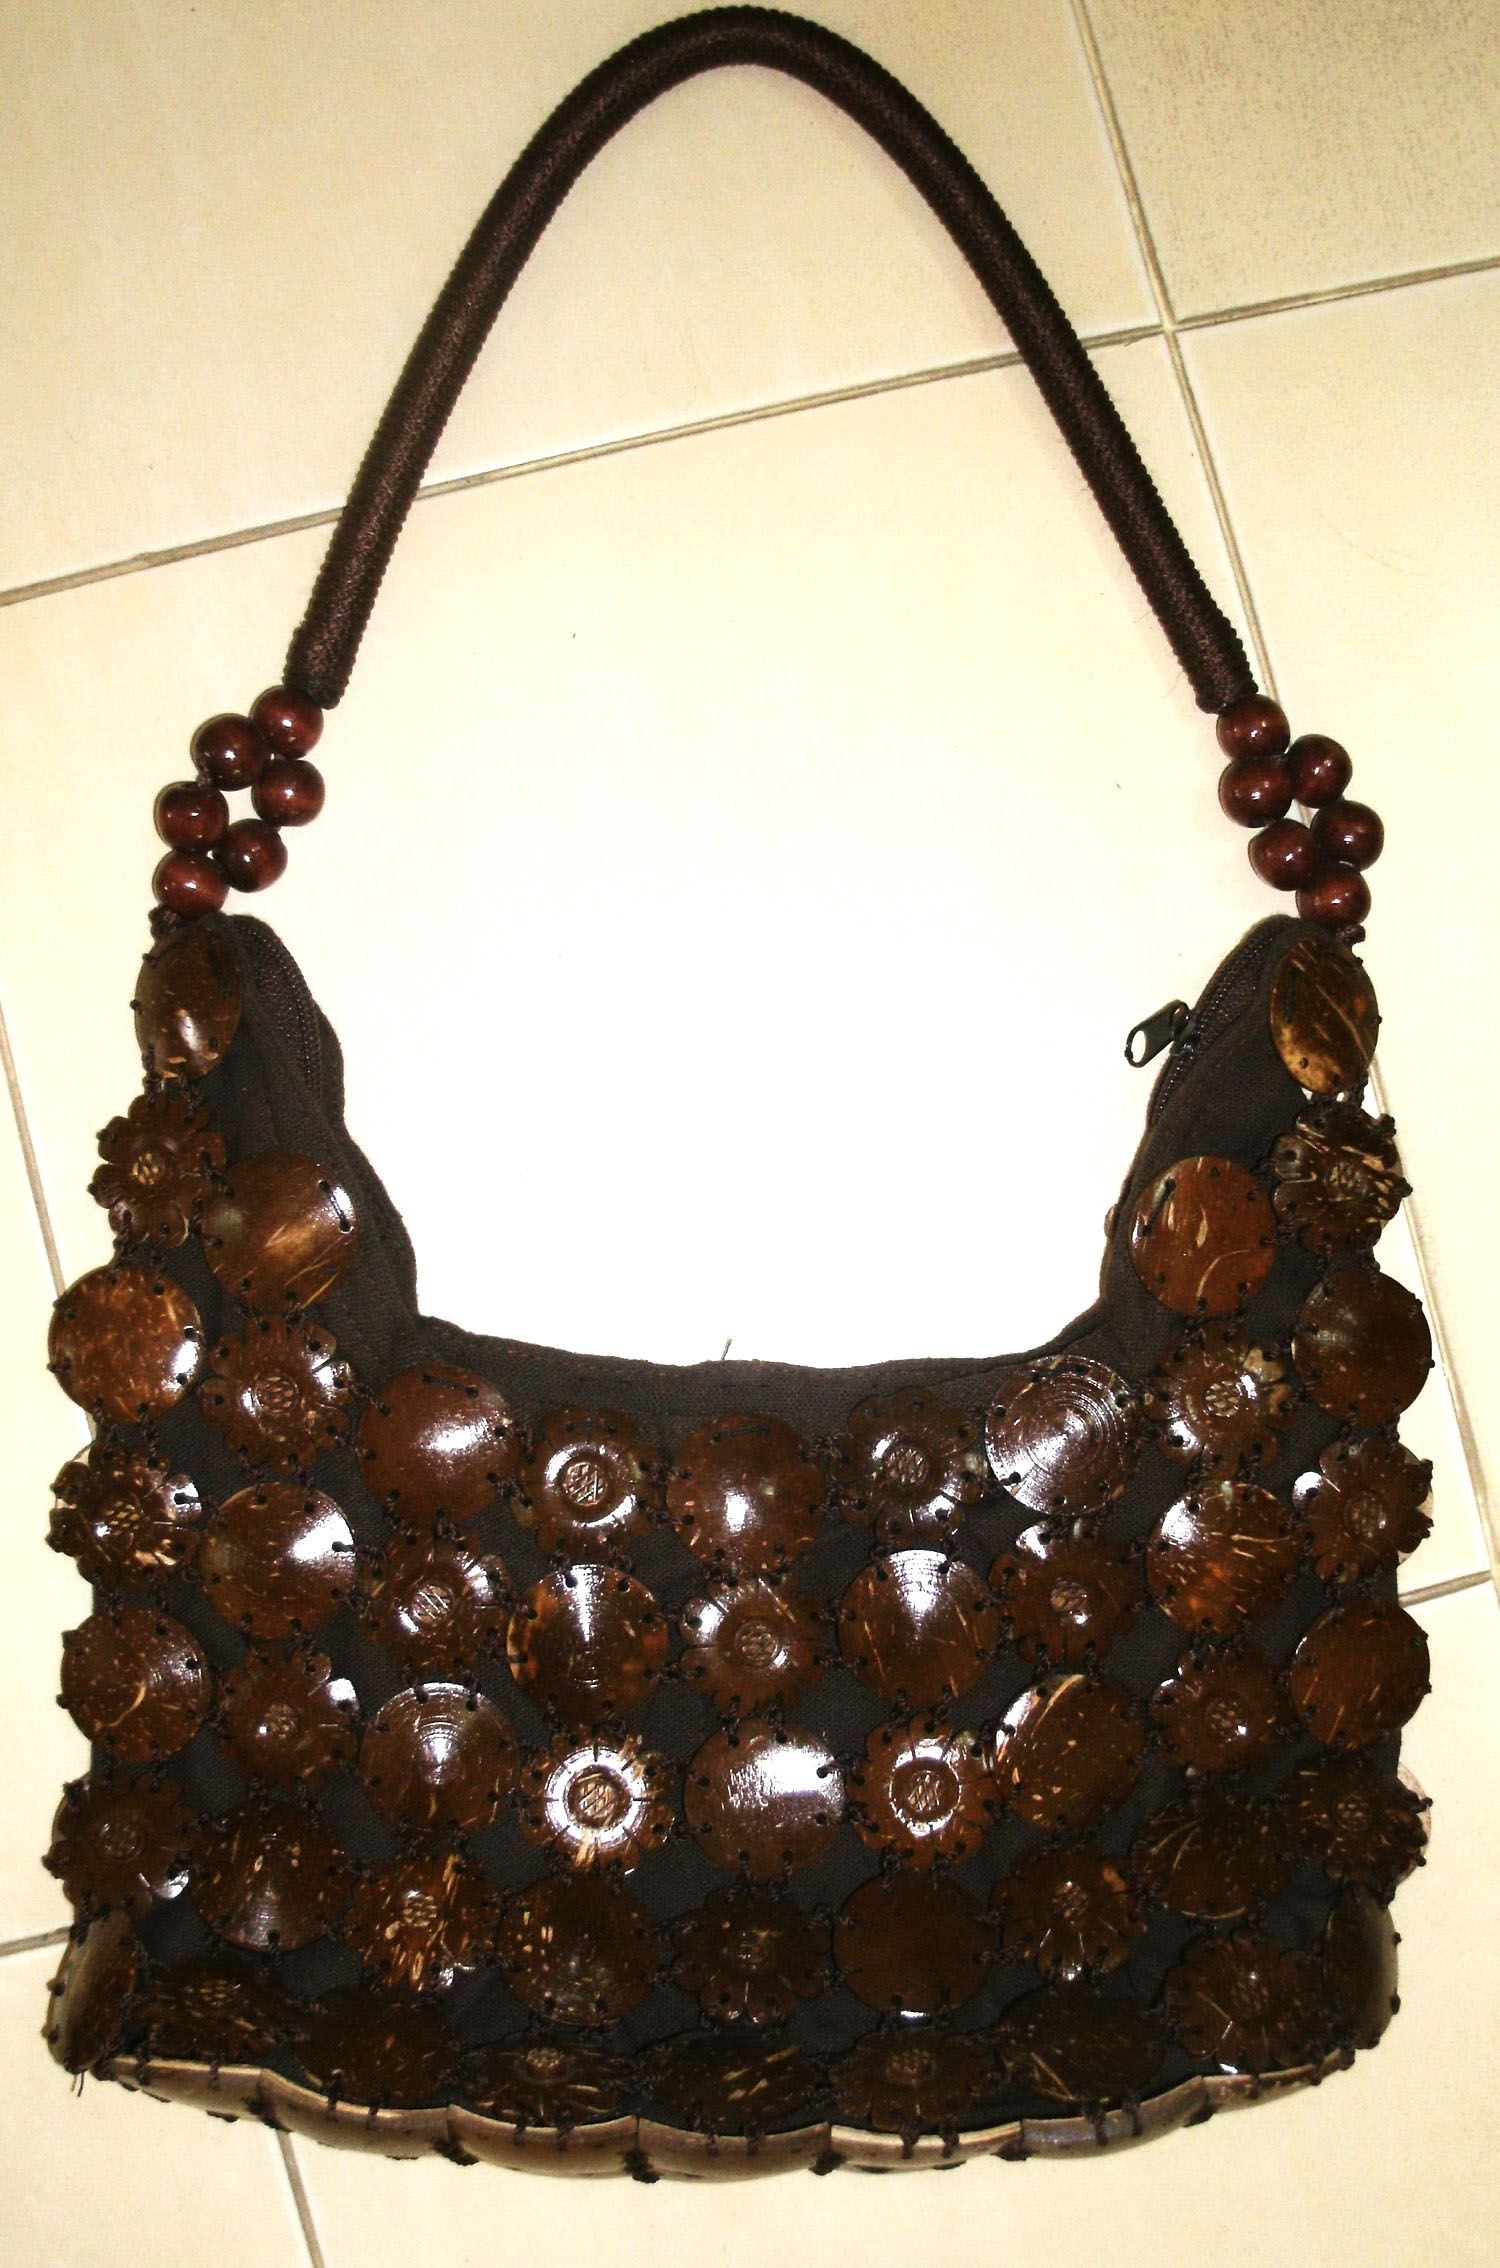 CoConutShellBag-C2681